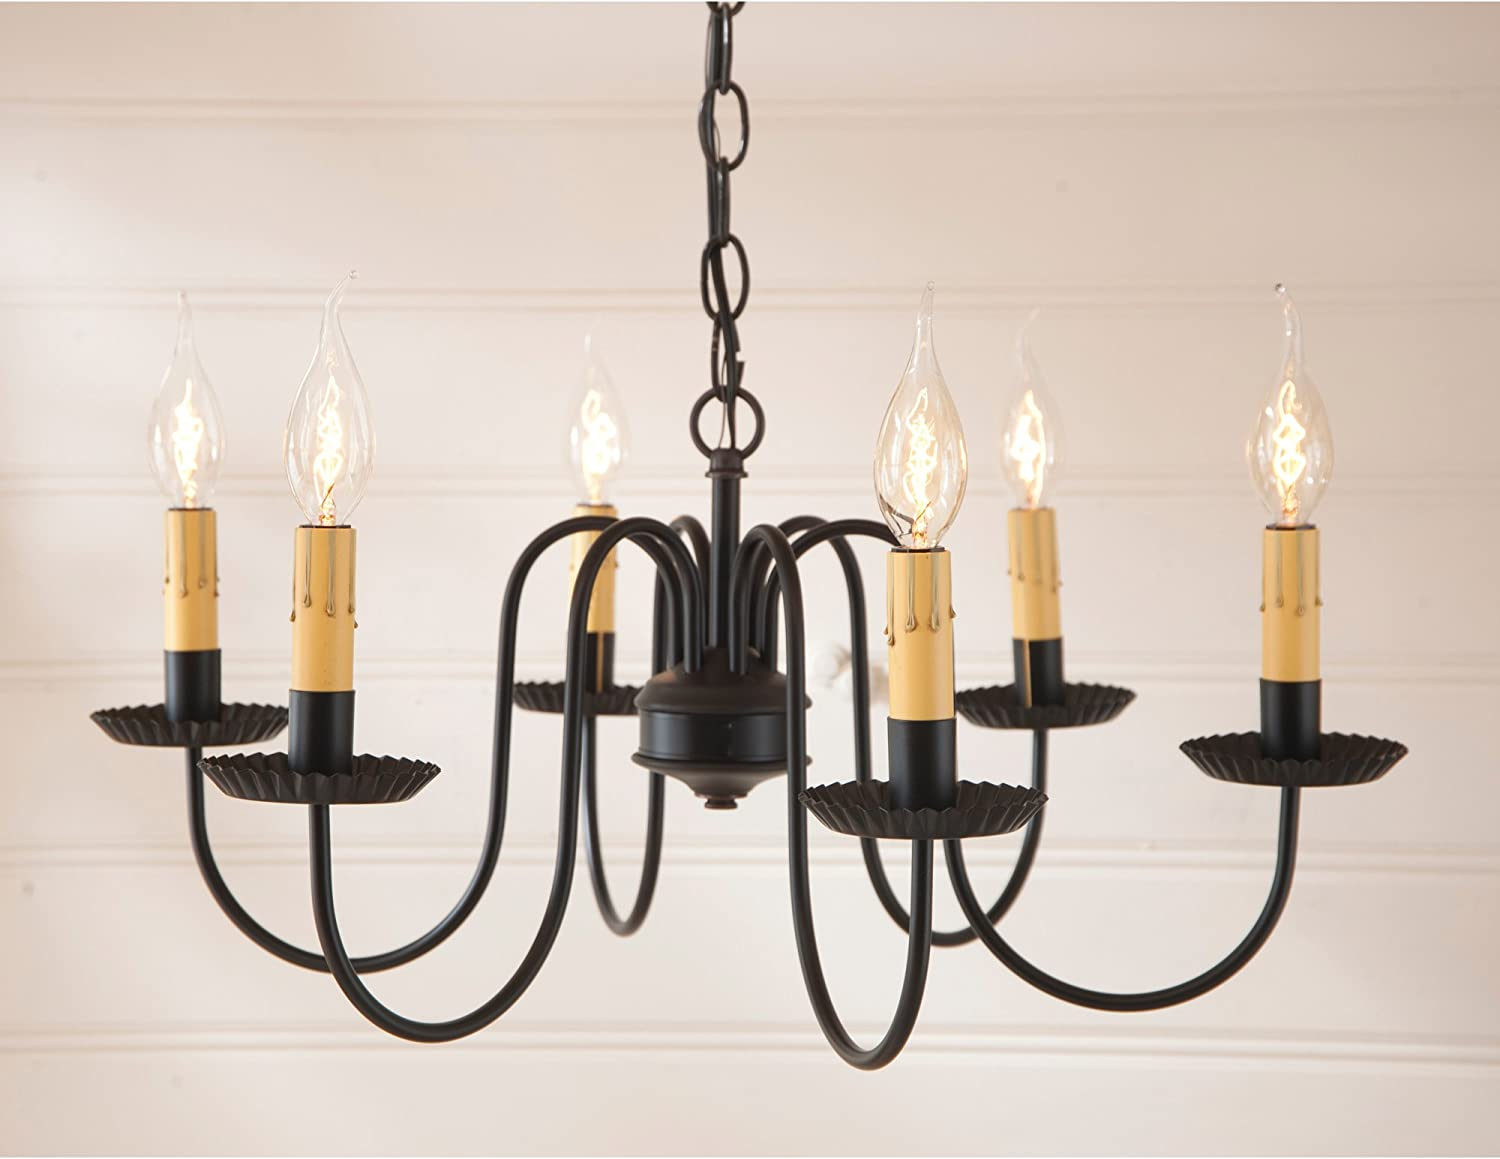 Irvin s Country Tinware 9132BL – Sheraton 6 Light Chandelier with Satin Black Finish